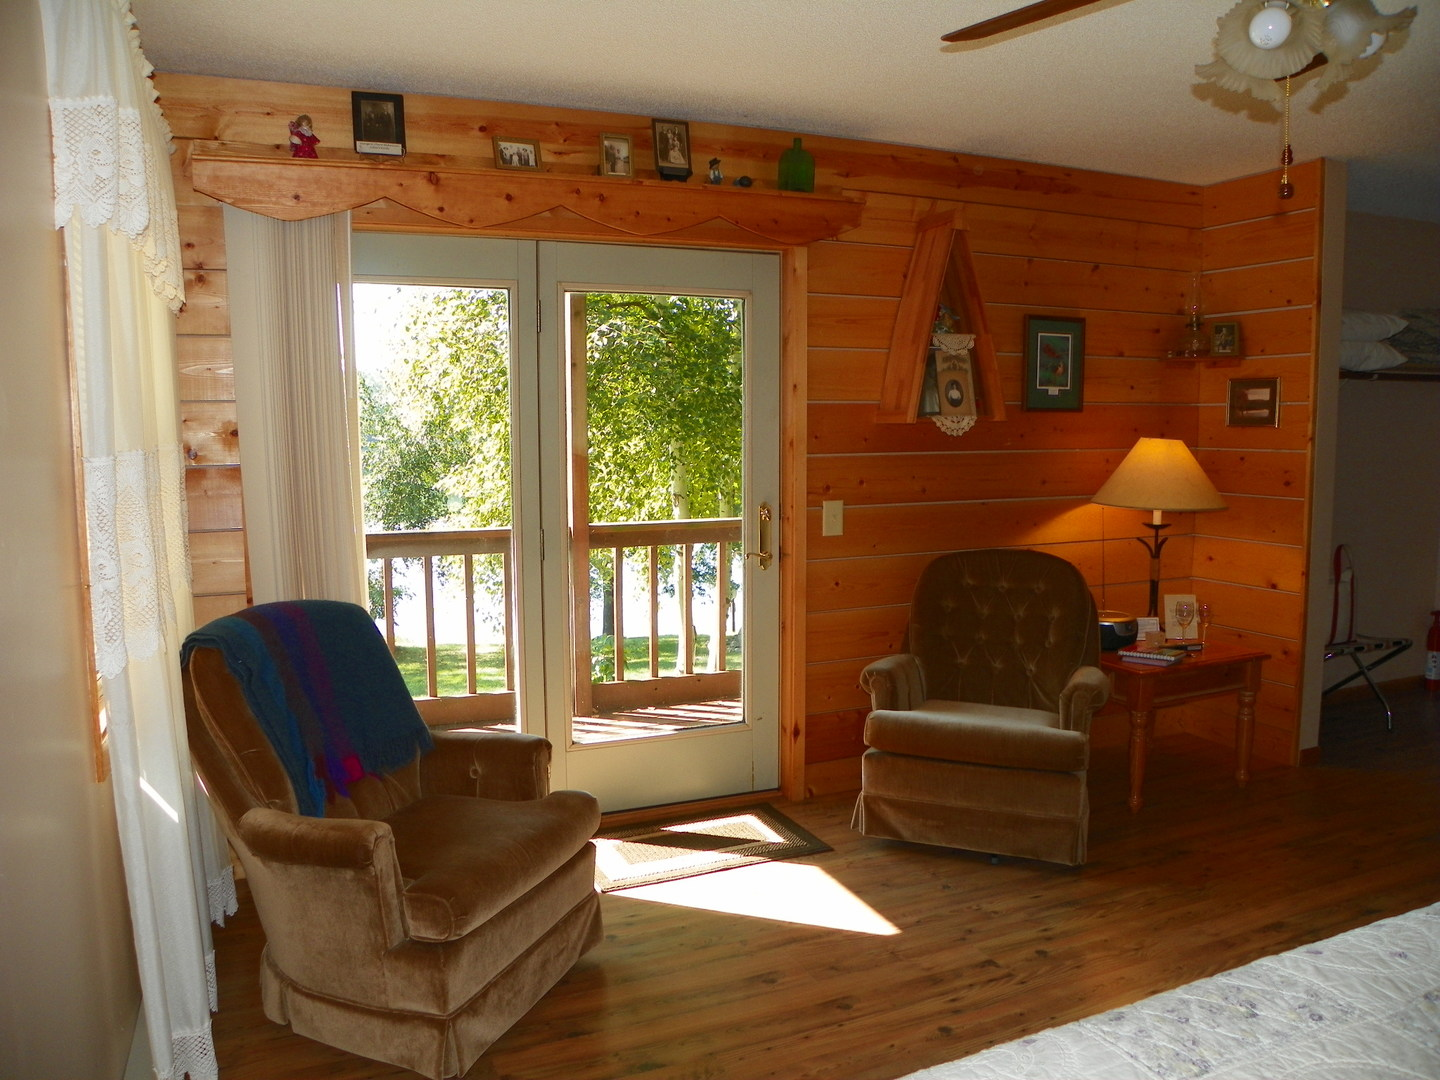 A view of a living room filled with furniture and a large window at Pleasant Lake Bed & Breakfast.